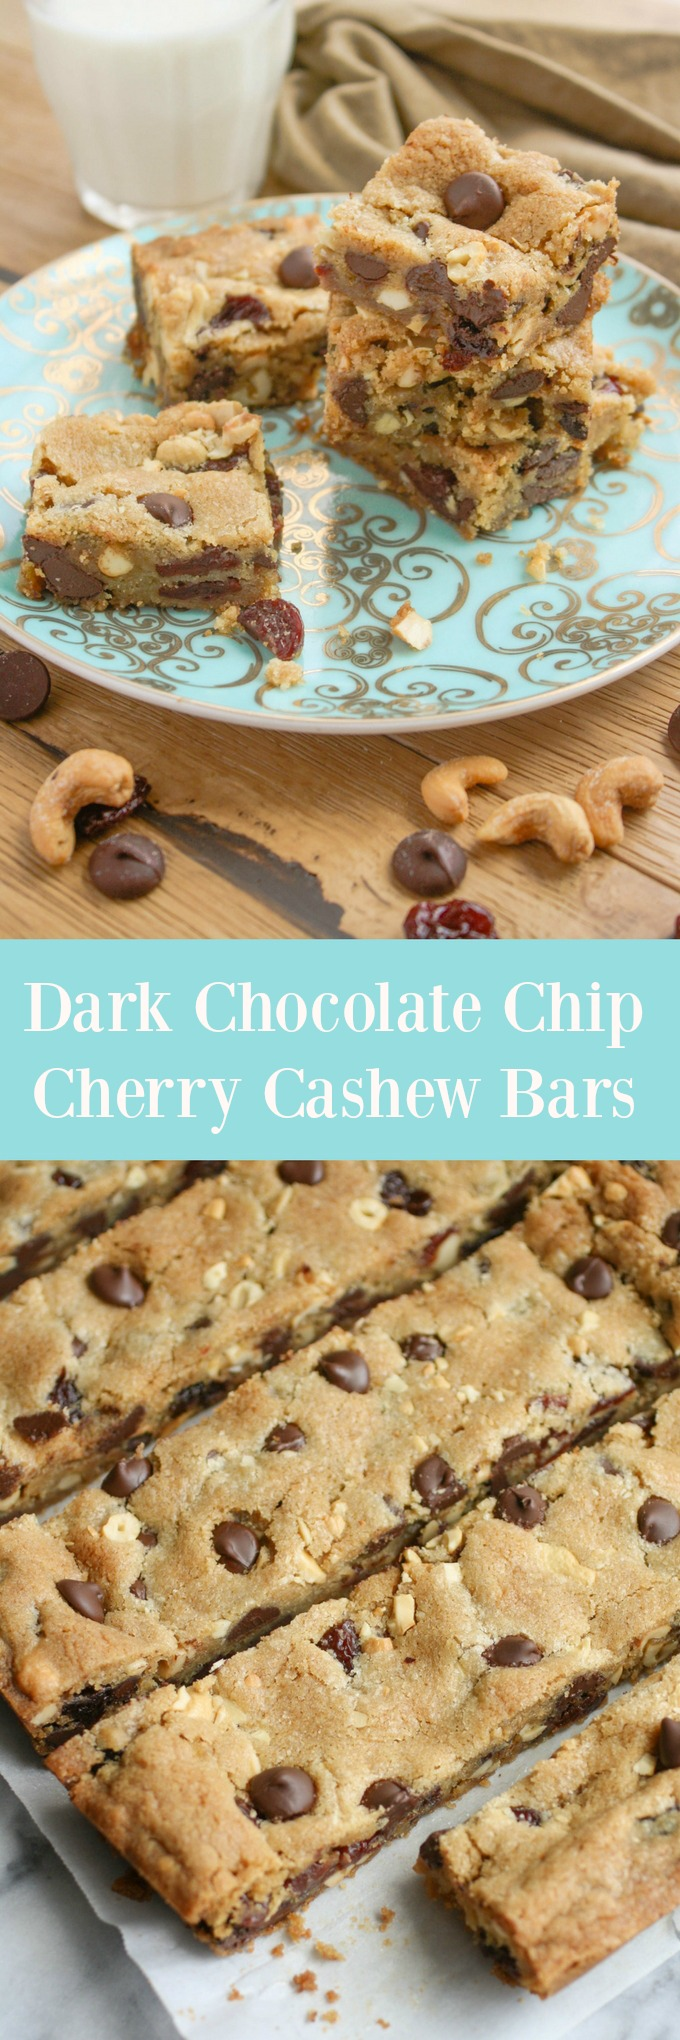 Dark Chocolate Chip Cherry Cashew Bars are a true treat! You'll love the upgrade from mere cookies given to these bars!